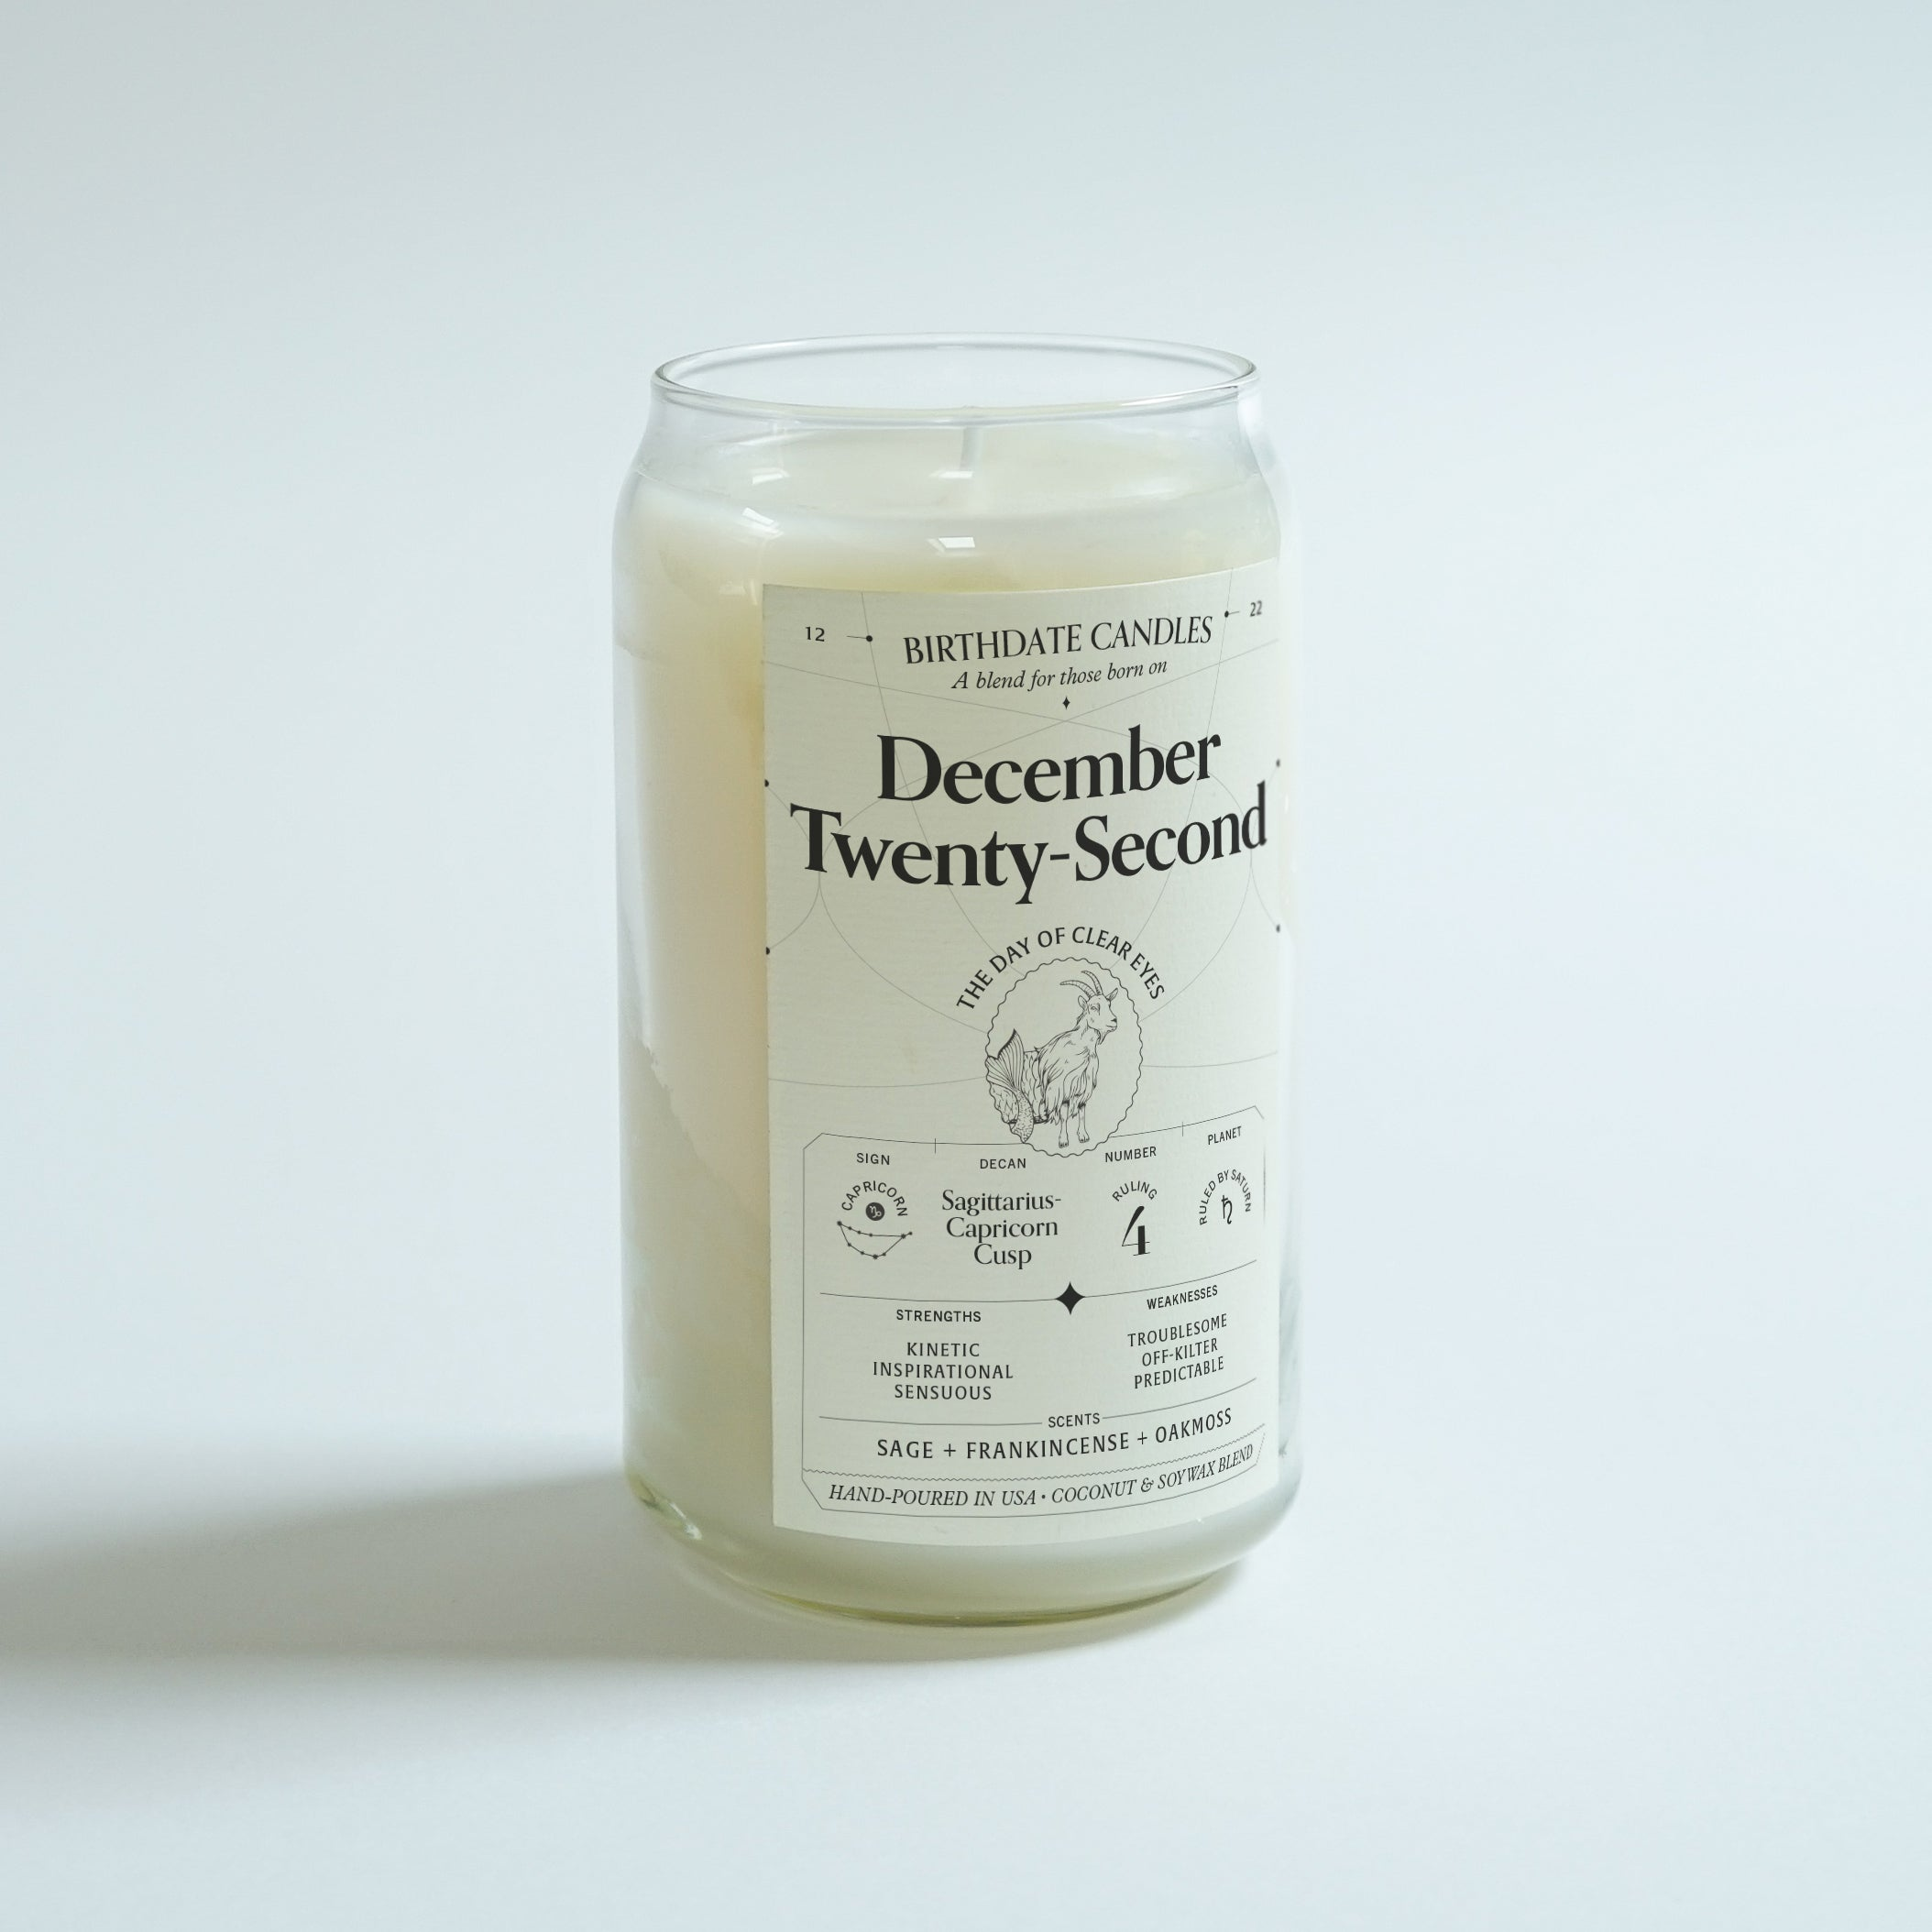 The December Twenty-Second Candle